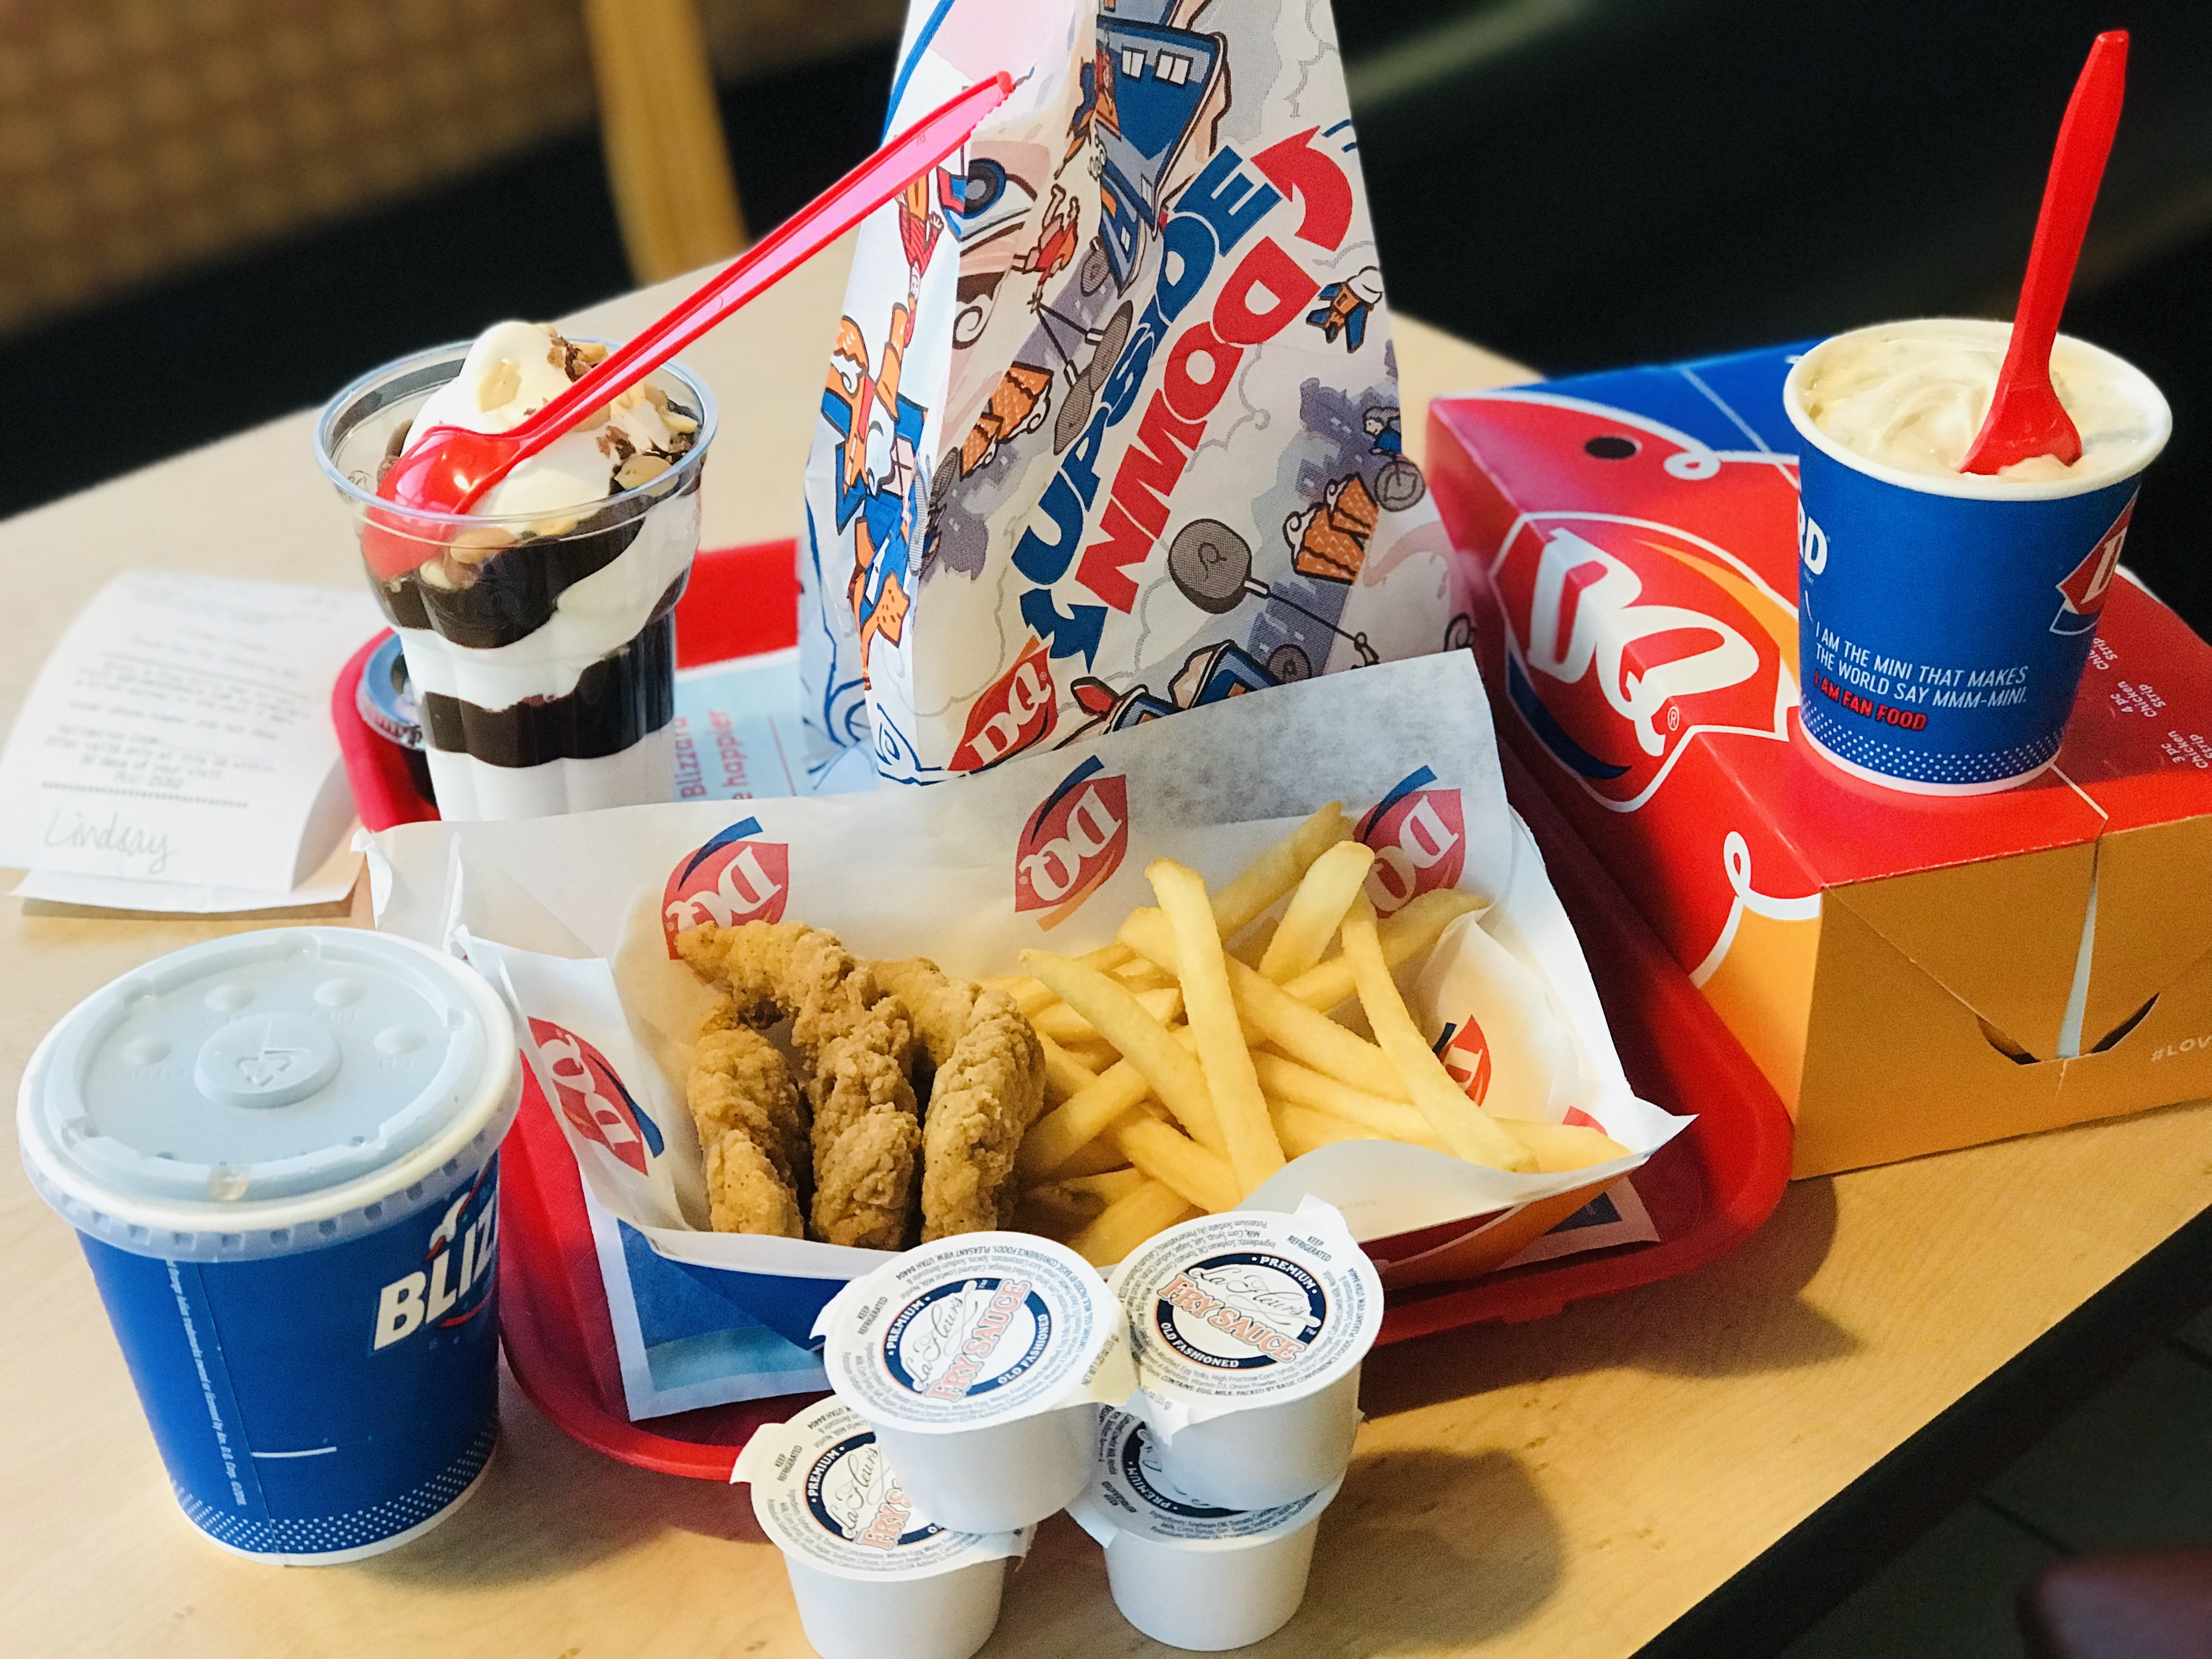 image relating to Dairy Queen Printable Application identified as 17 Dairy Queen Hacks Thus Oneself Can Take in All the Blizzards - The